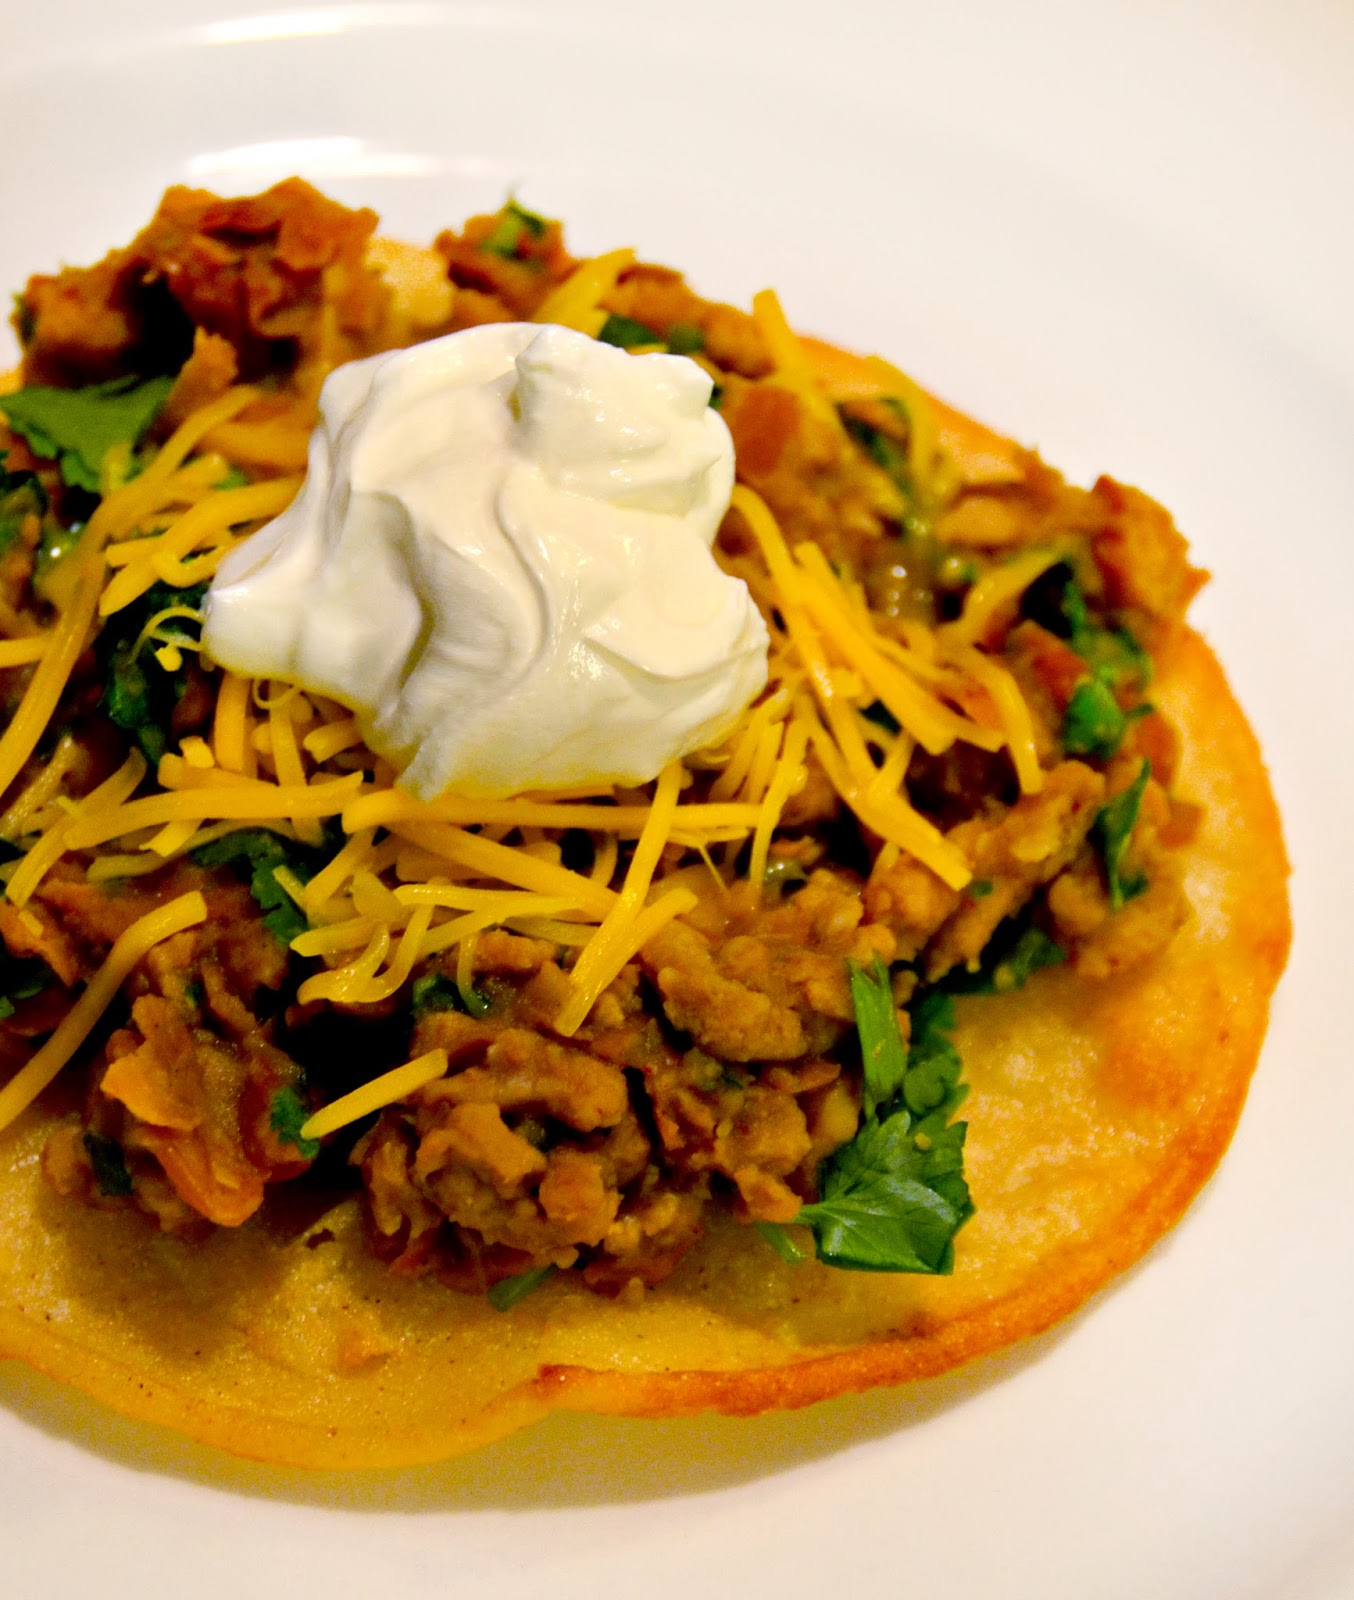 how to make tostada shells out of corn tortillas